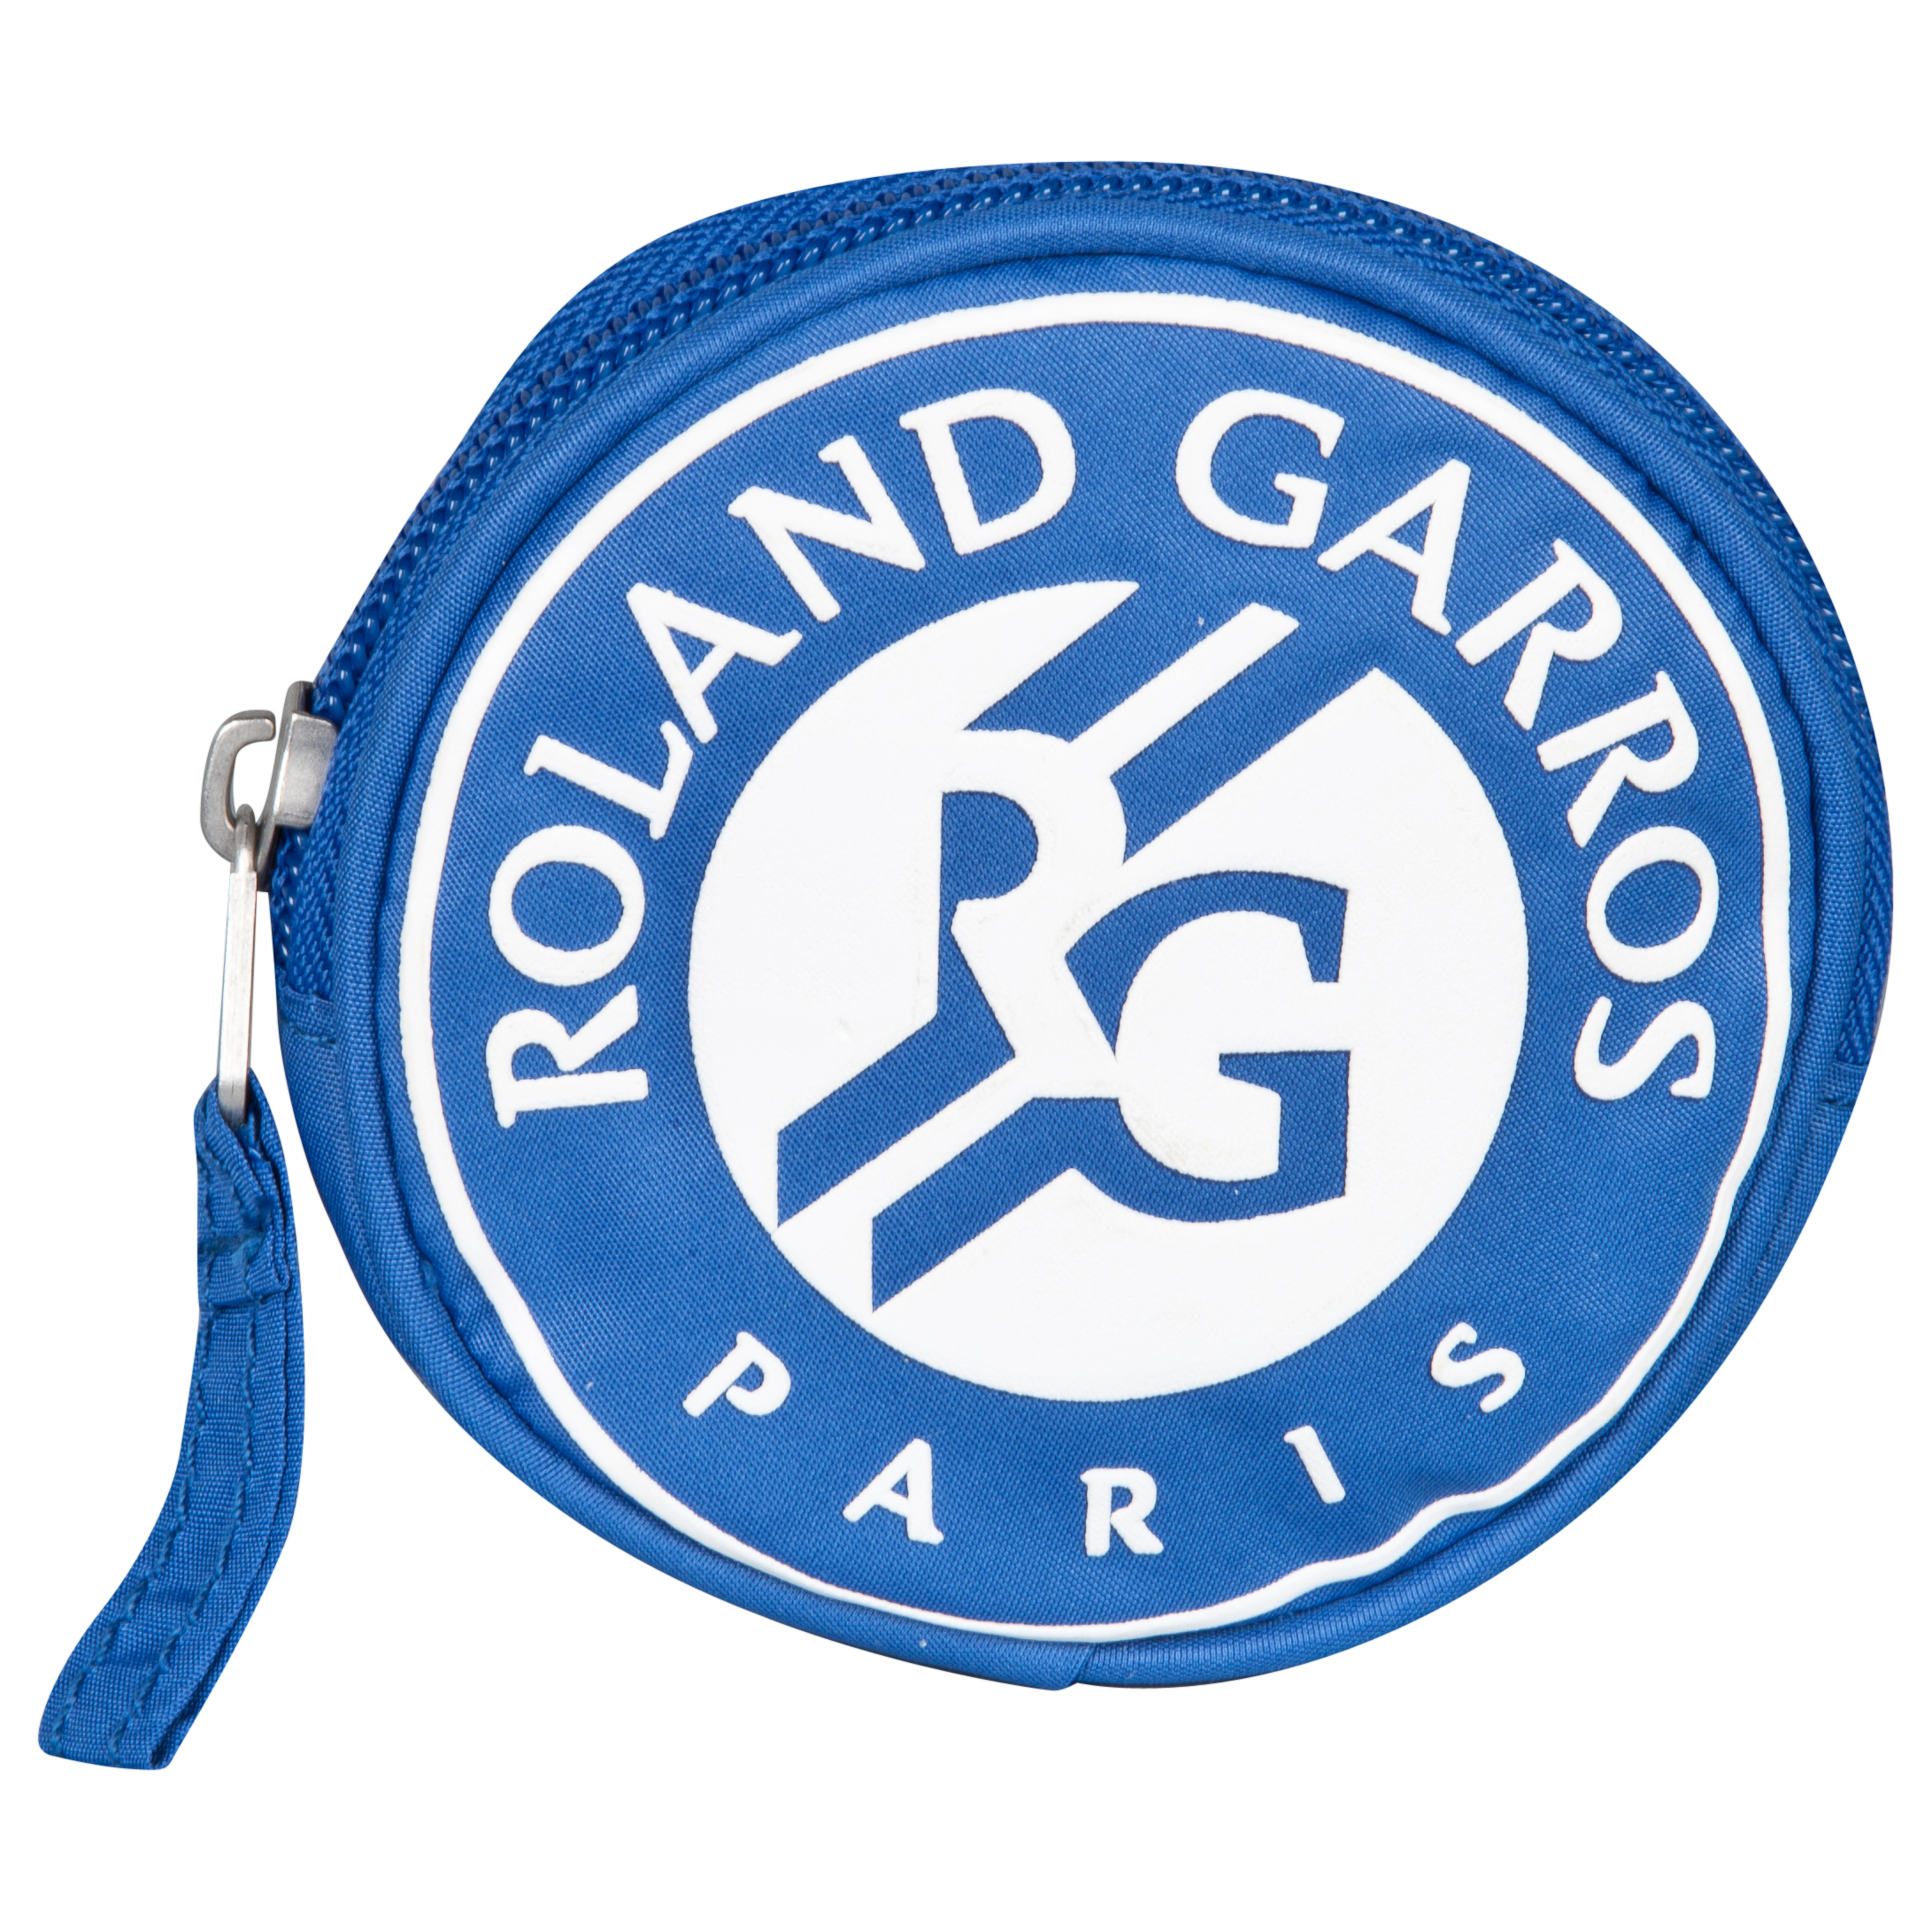 Roland-Garros Round Zip Purse - Blue - One Size